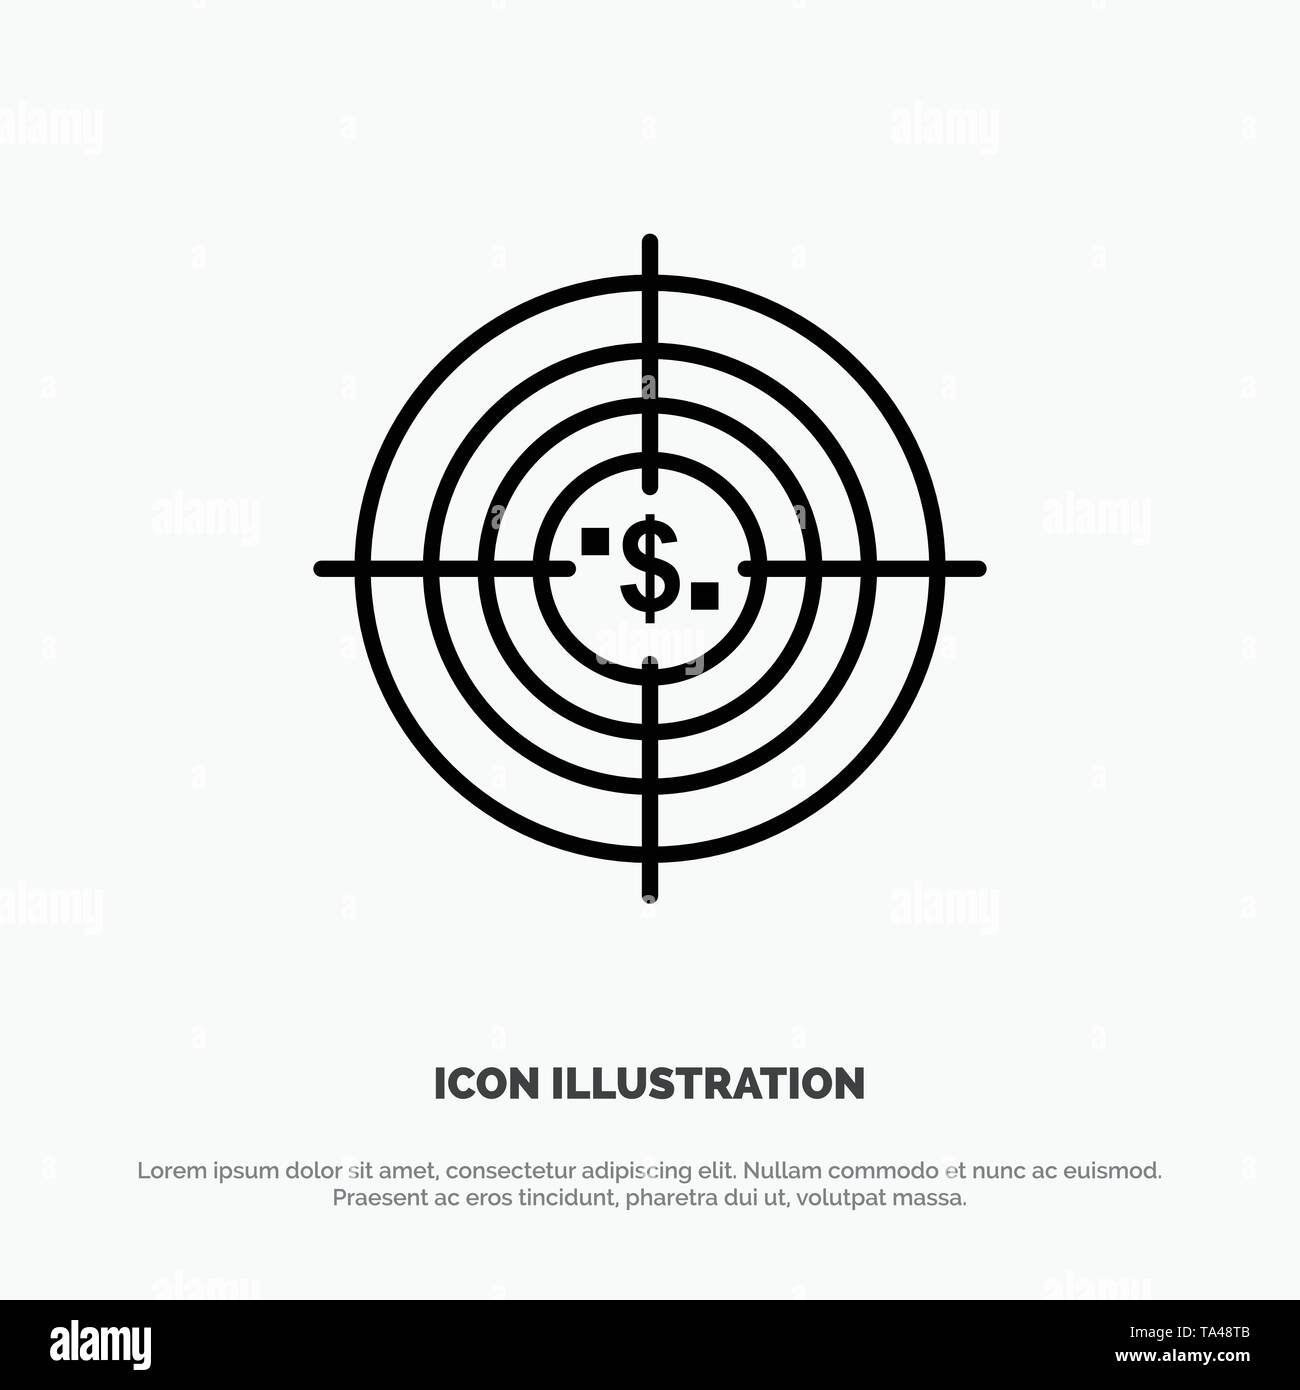 Target, Aim, Business, Cash, Financial, Funds, Hunting, Money Line Icon Vector - Stock Image